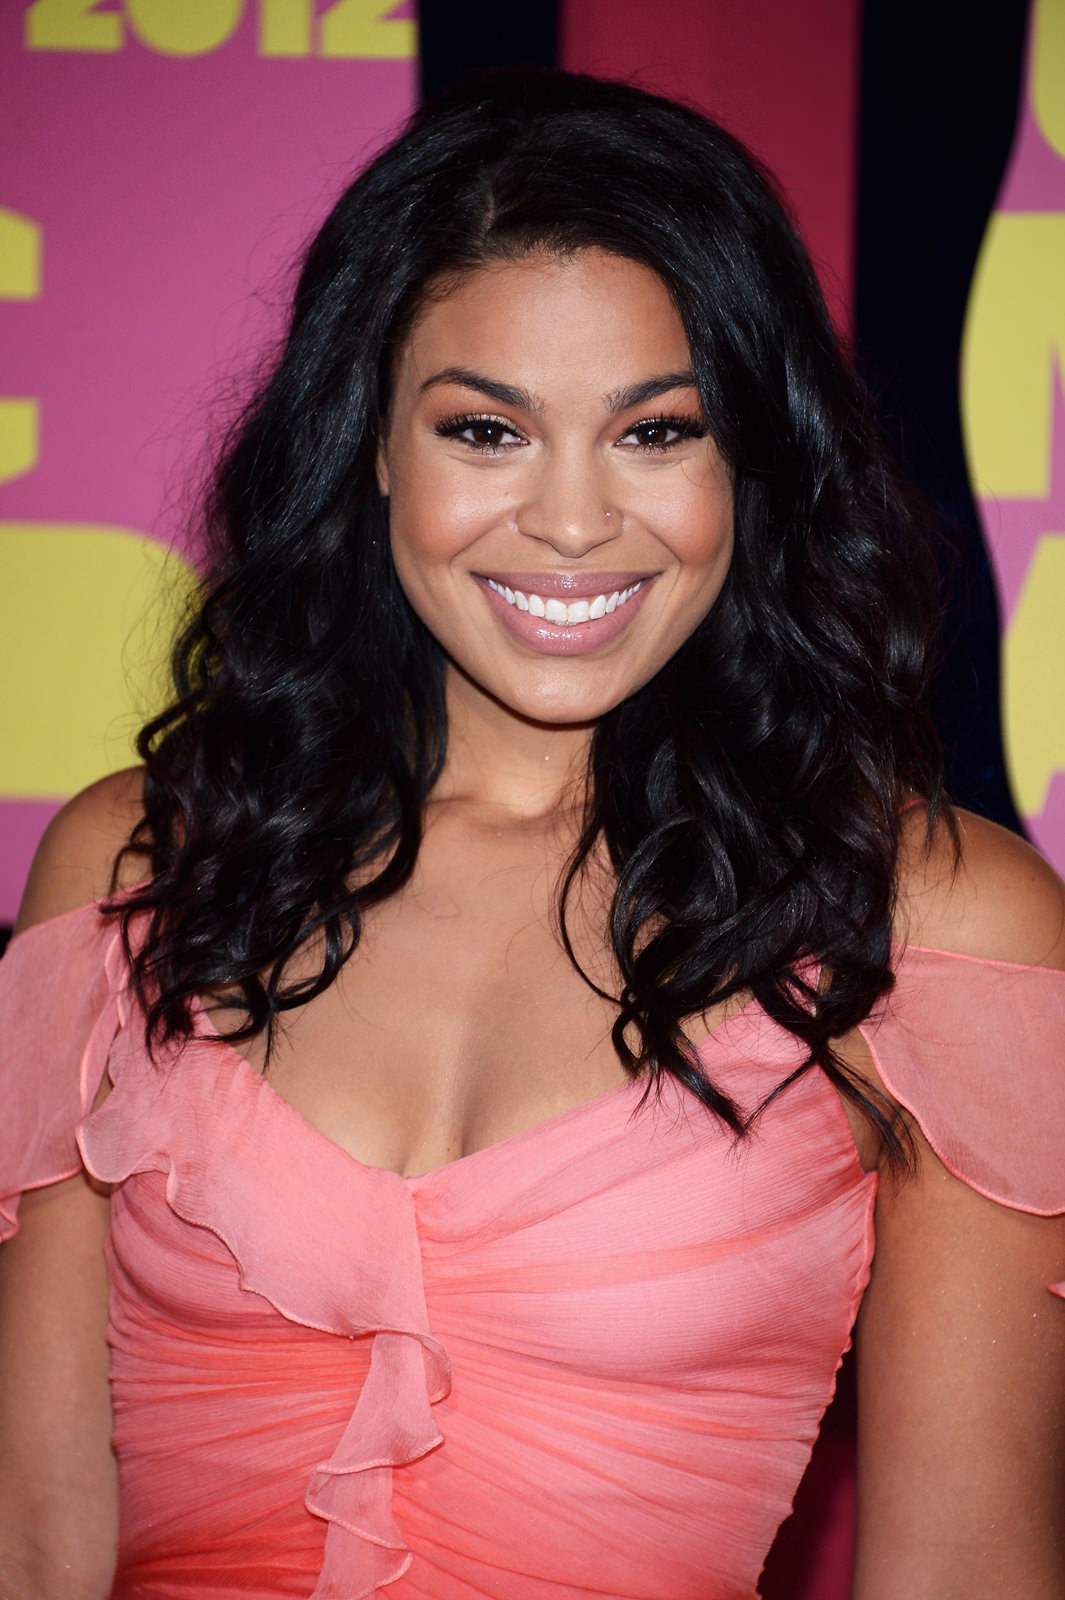 Jordin Sparks Photo Gallery